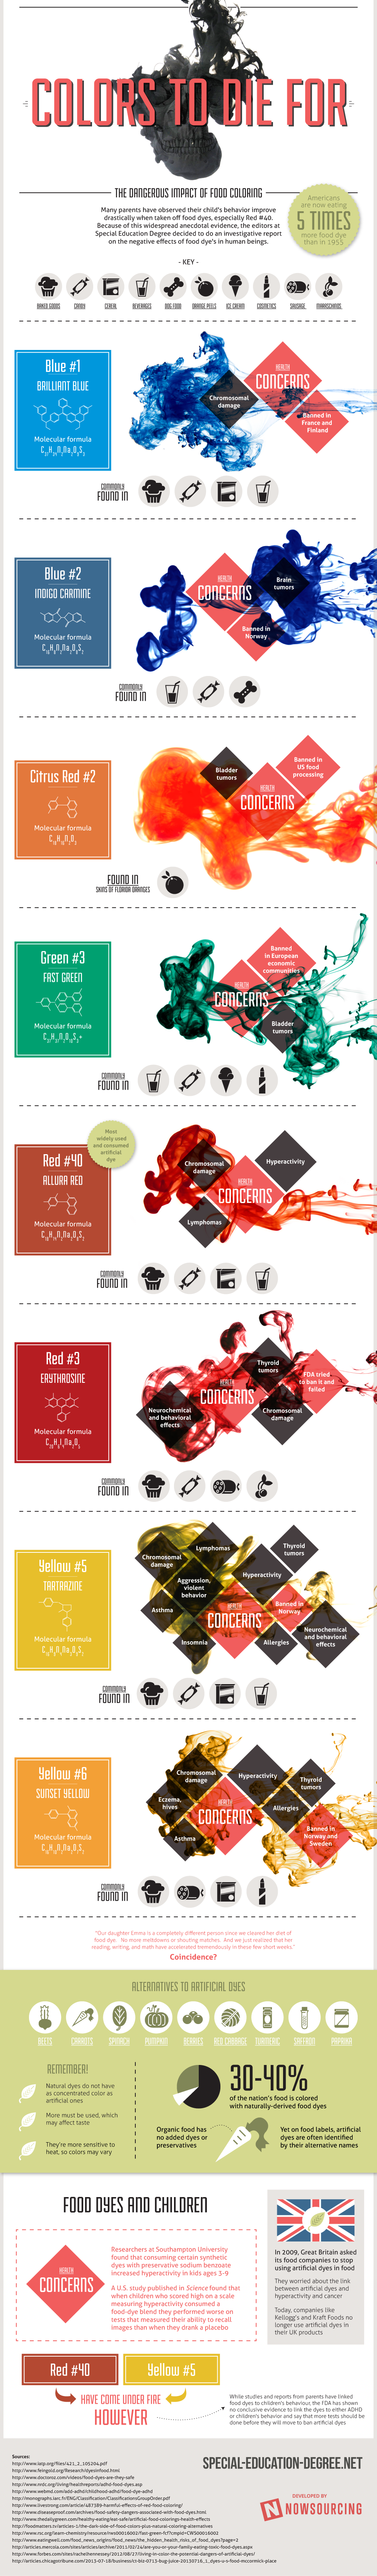 Just How Dangerous Is The Dye In Your Food? (INFOGRAPHIC ...